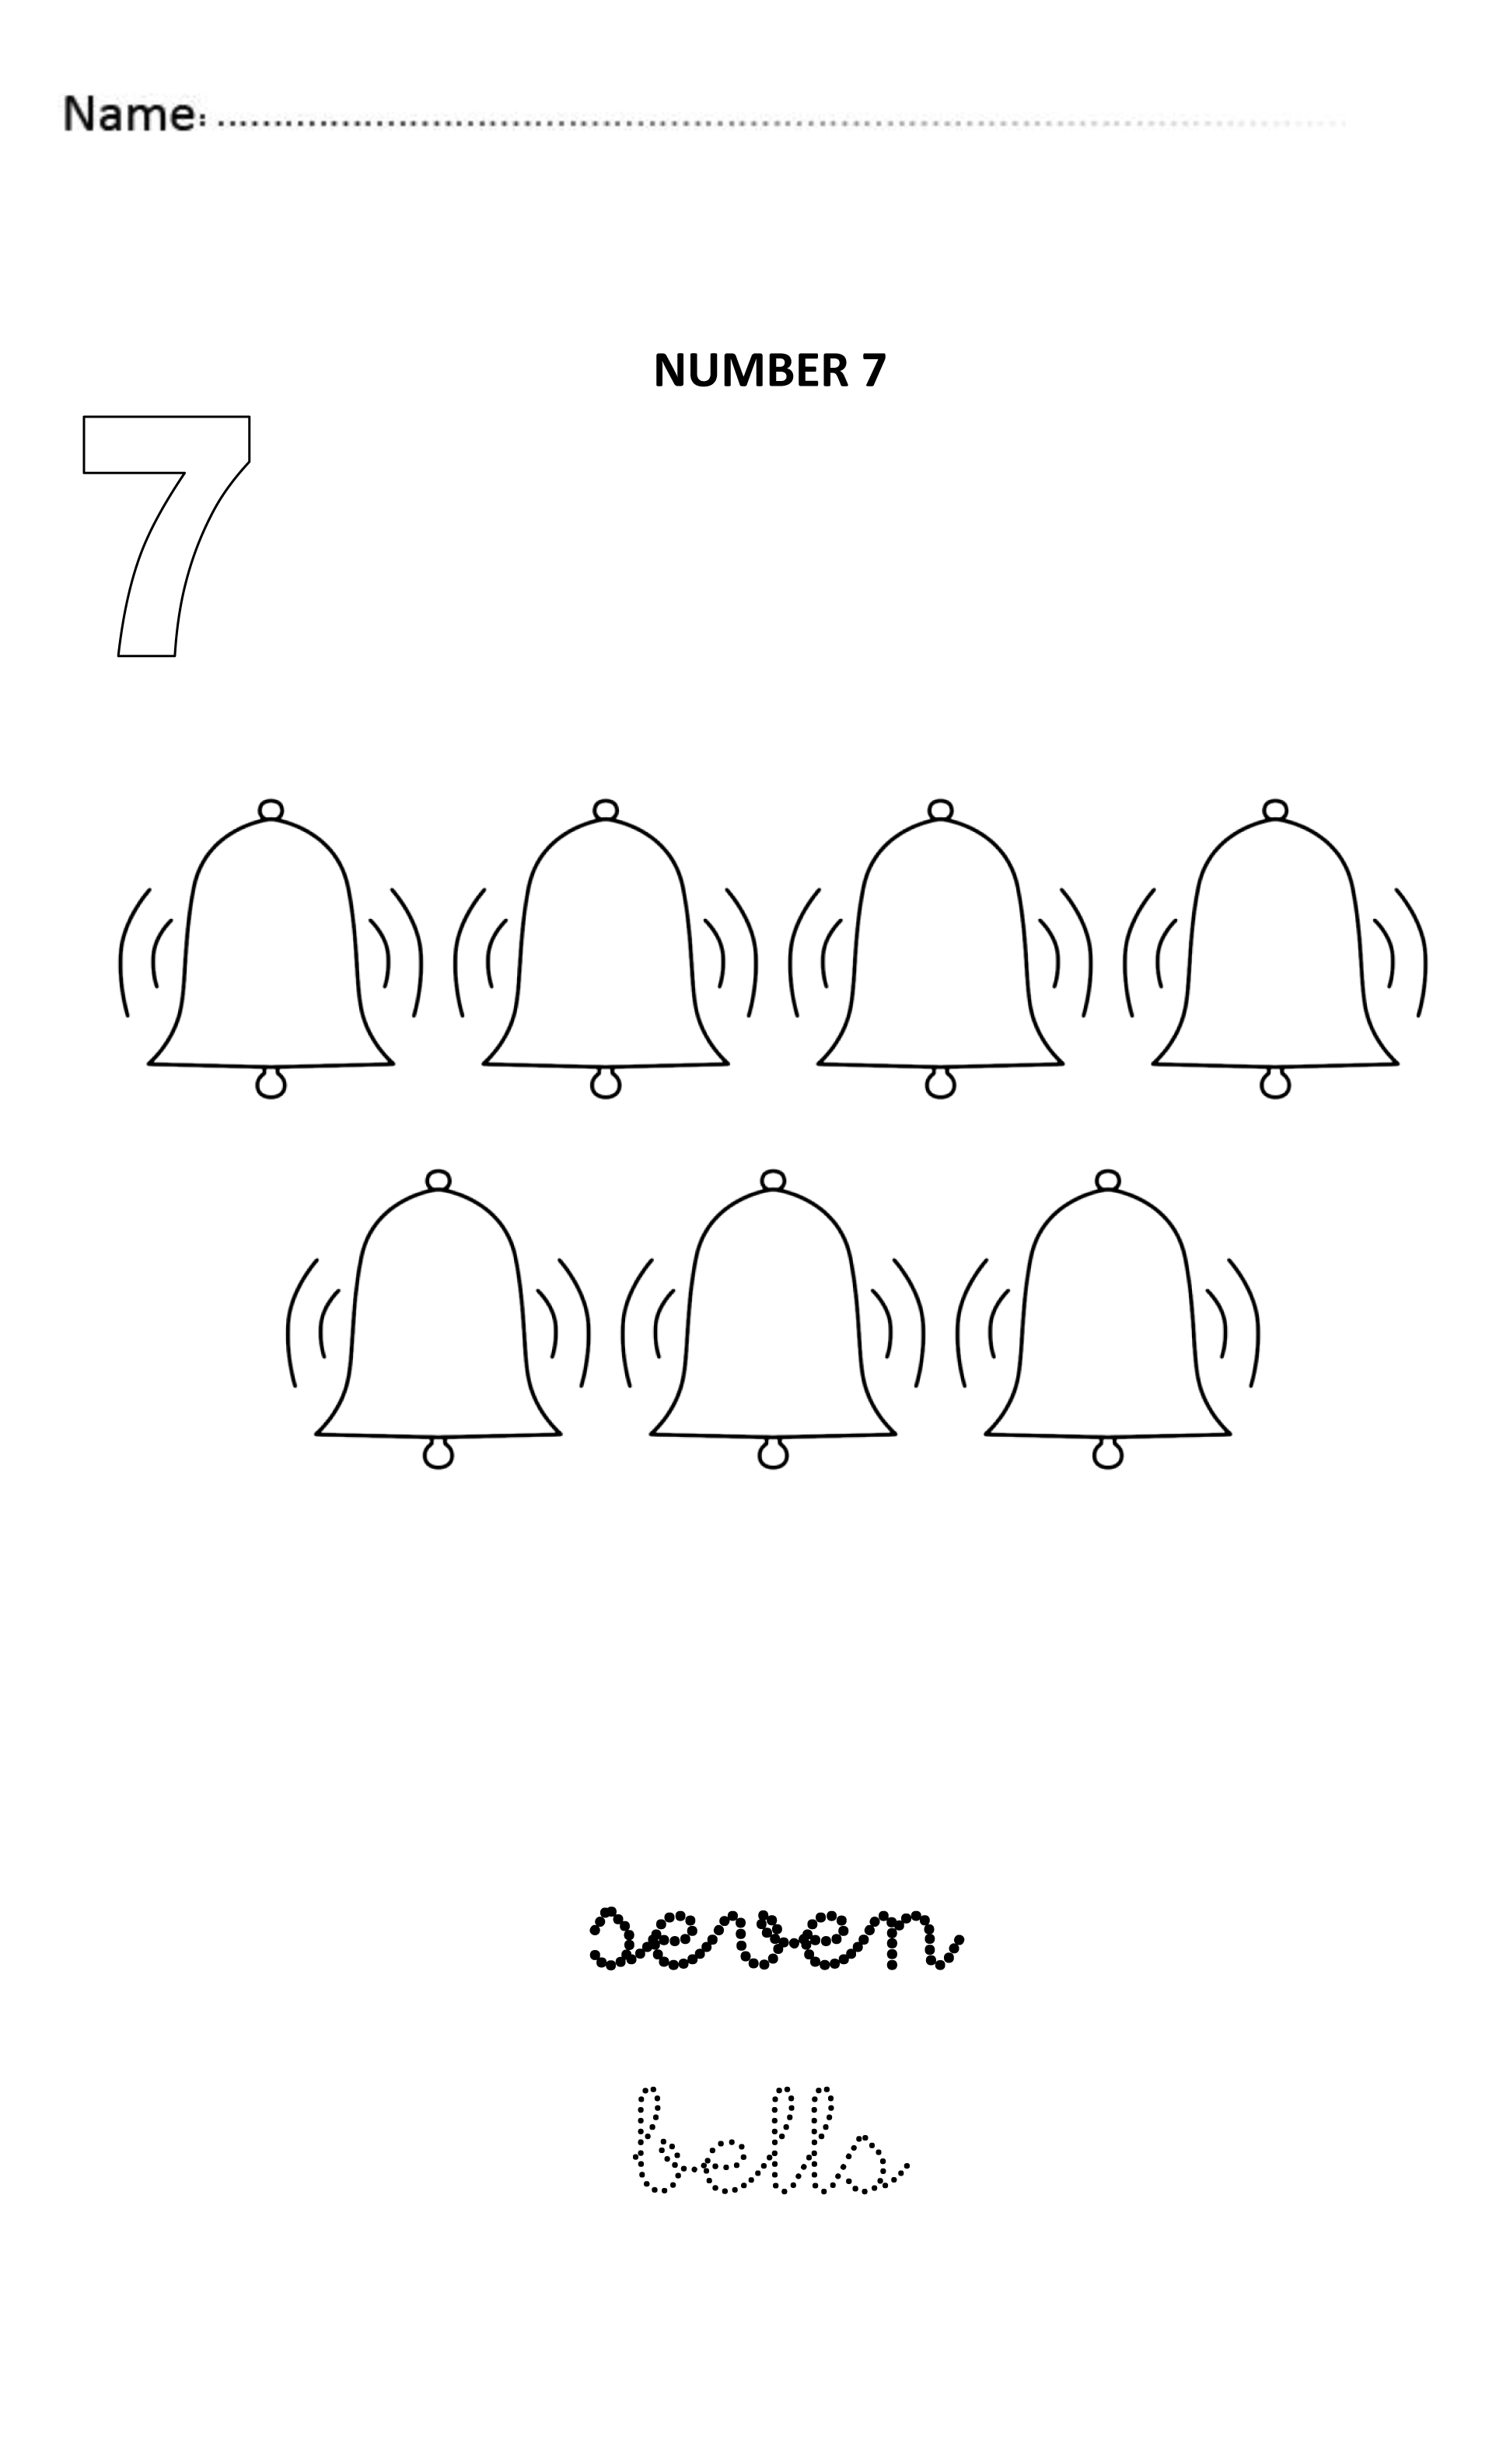 Number 7 Easy And Visual Worksheet To Teach Numbers For